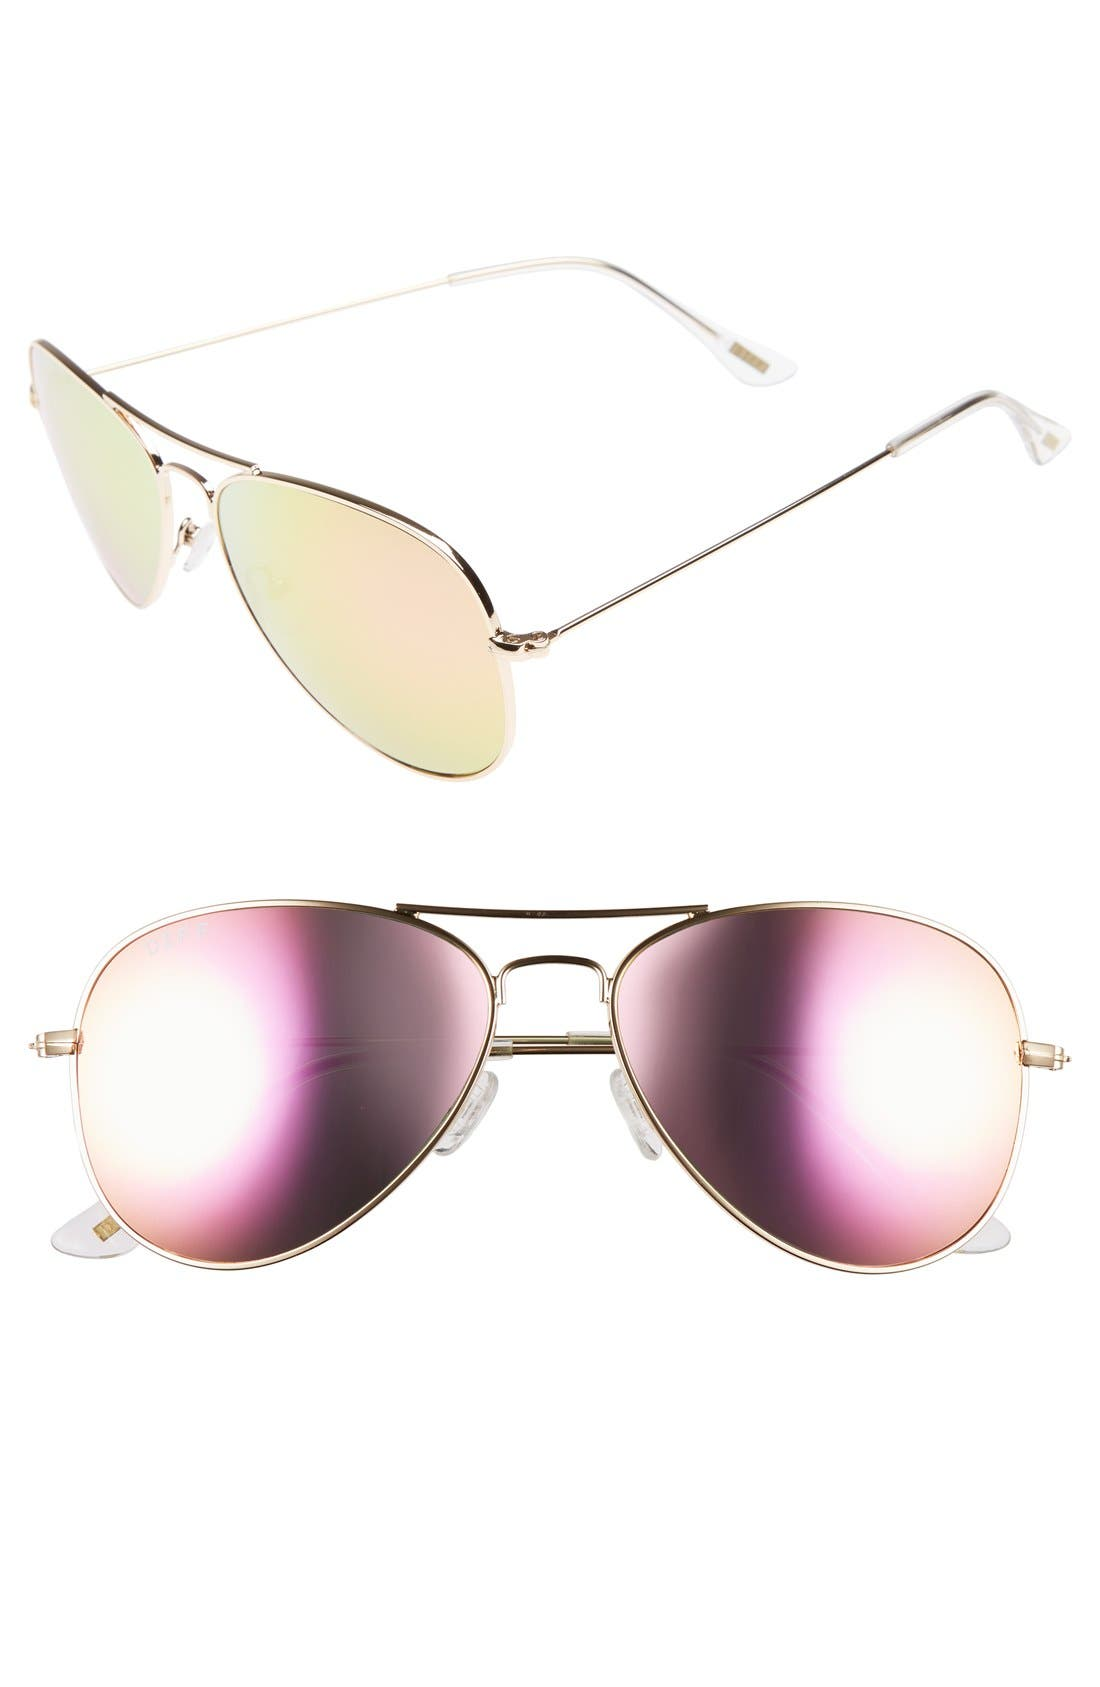 Main Image - DIFF Cruz 57mm Metal Aviator Sunglasses